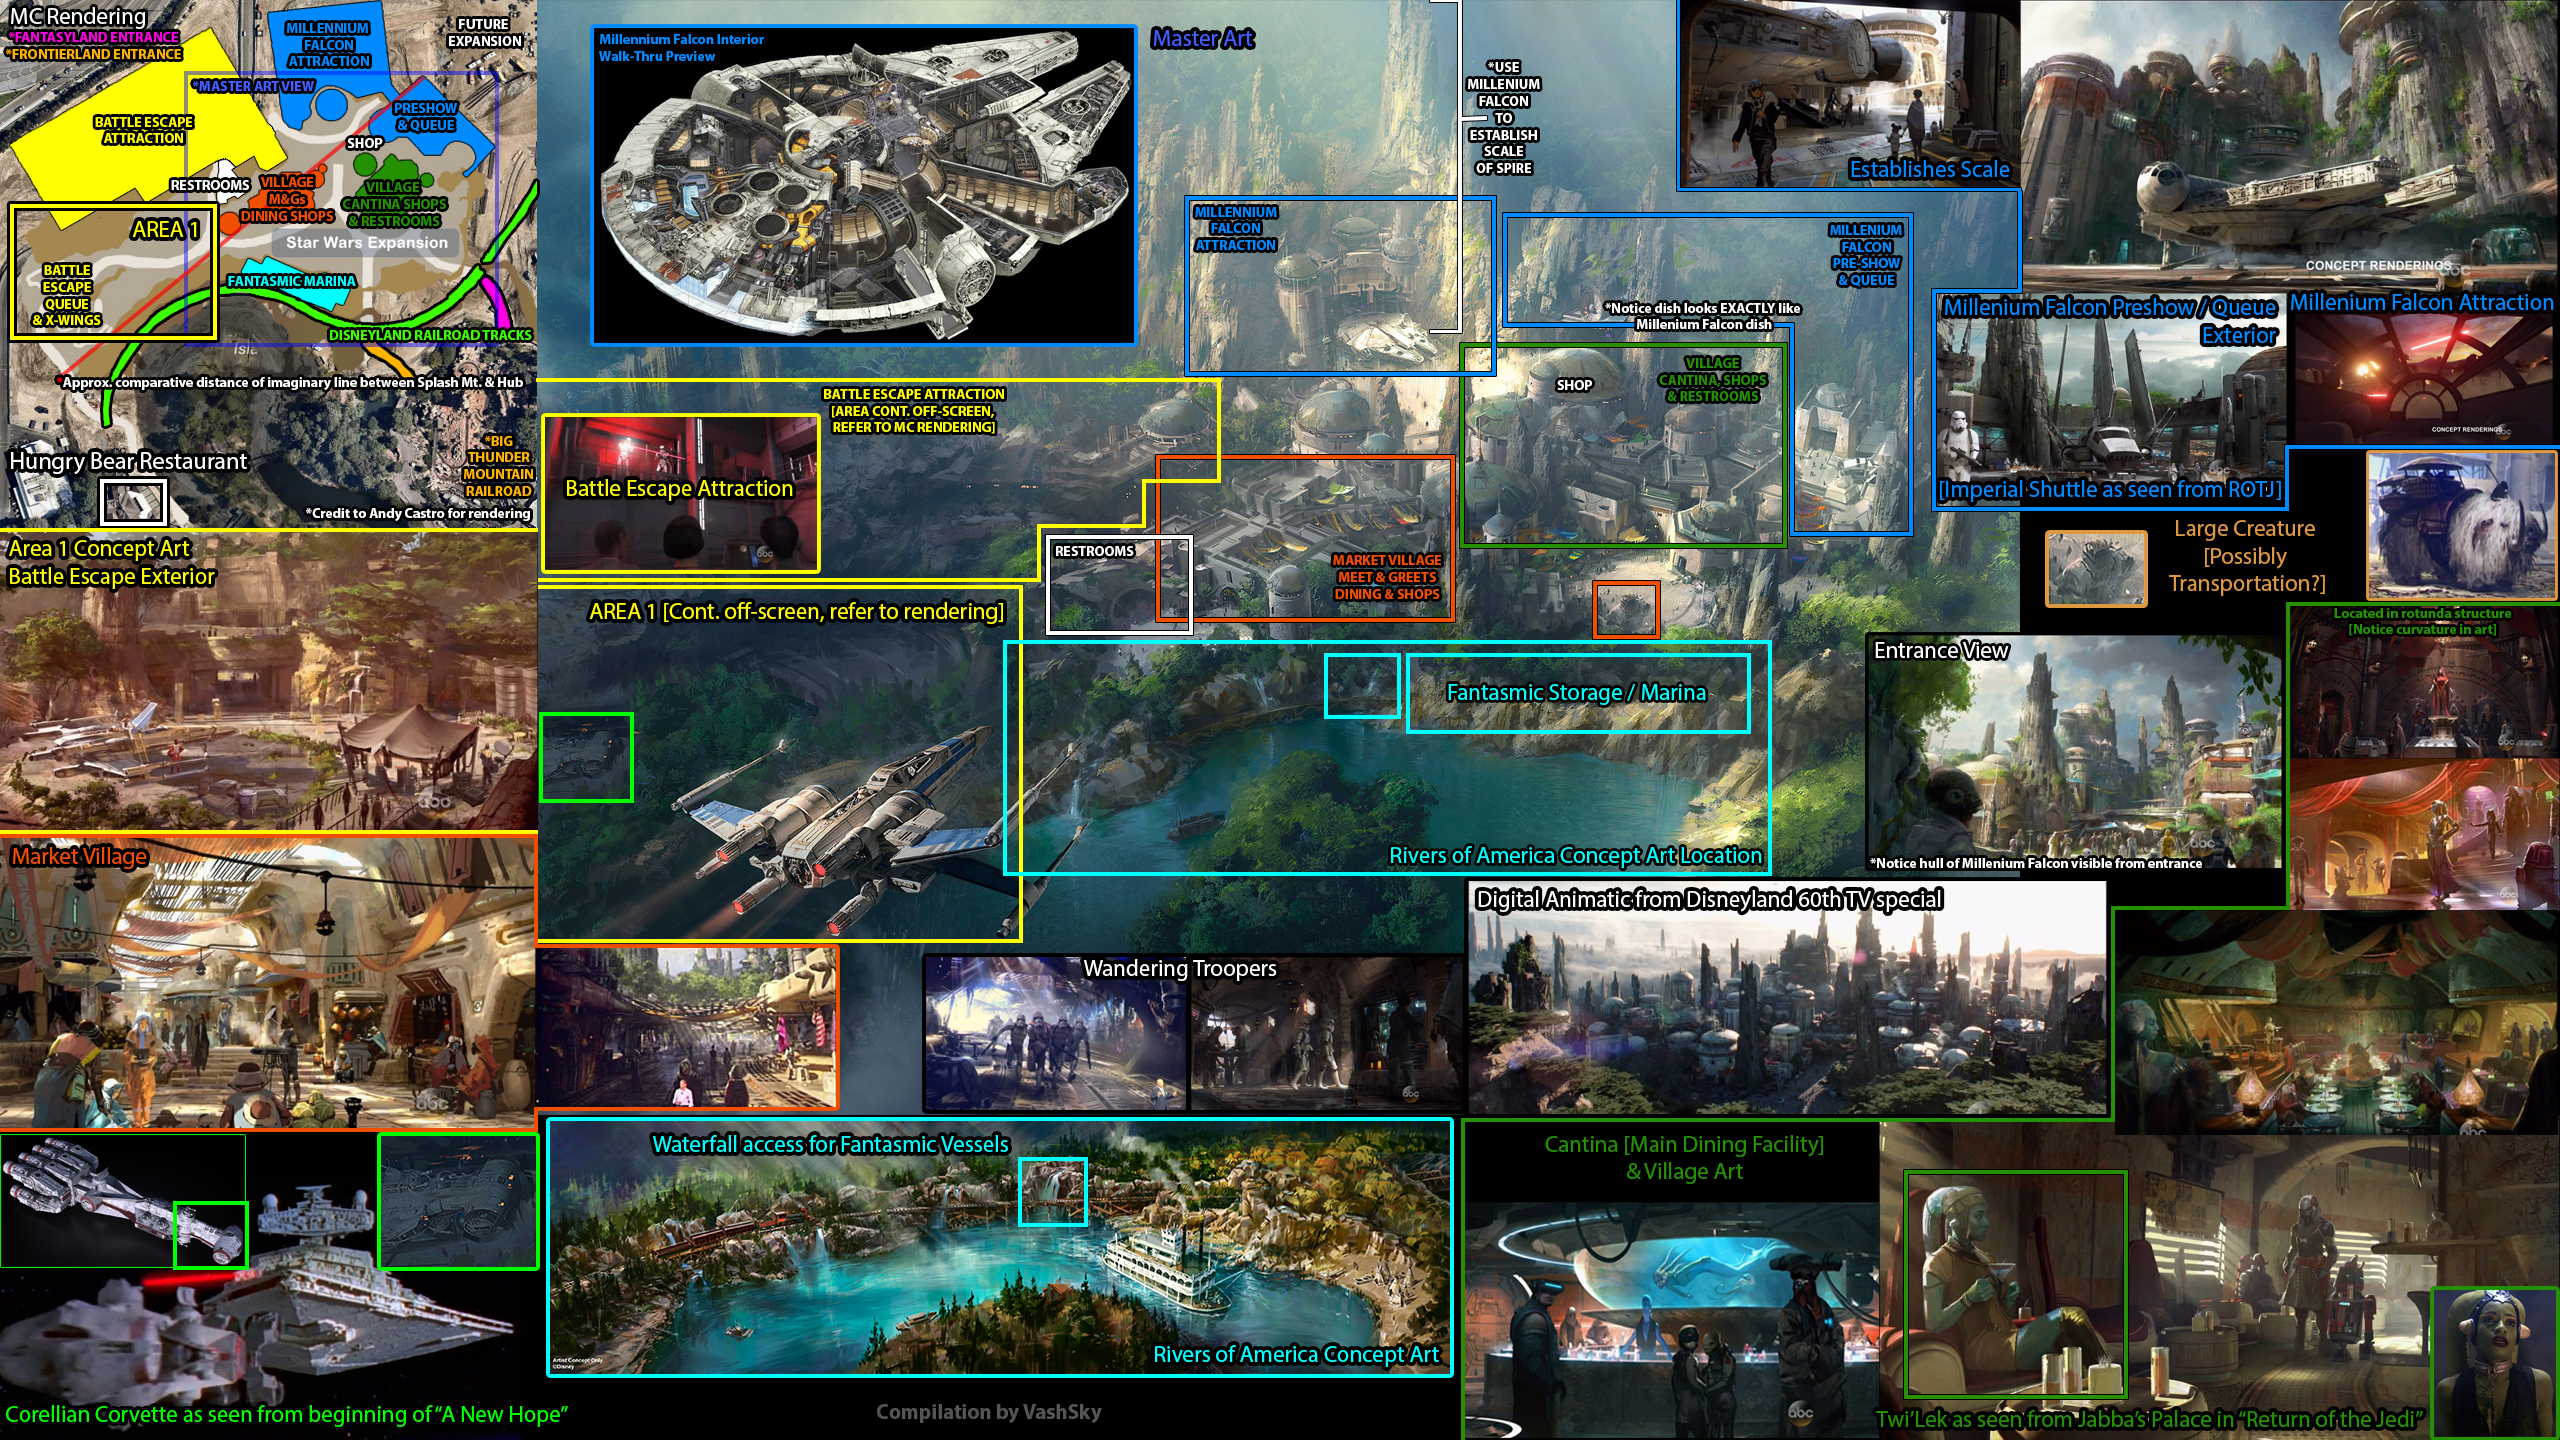 Get a lay of the land with this infographic by @VashSky for new Star Wars themed land!